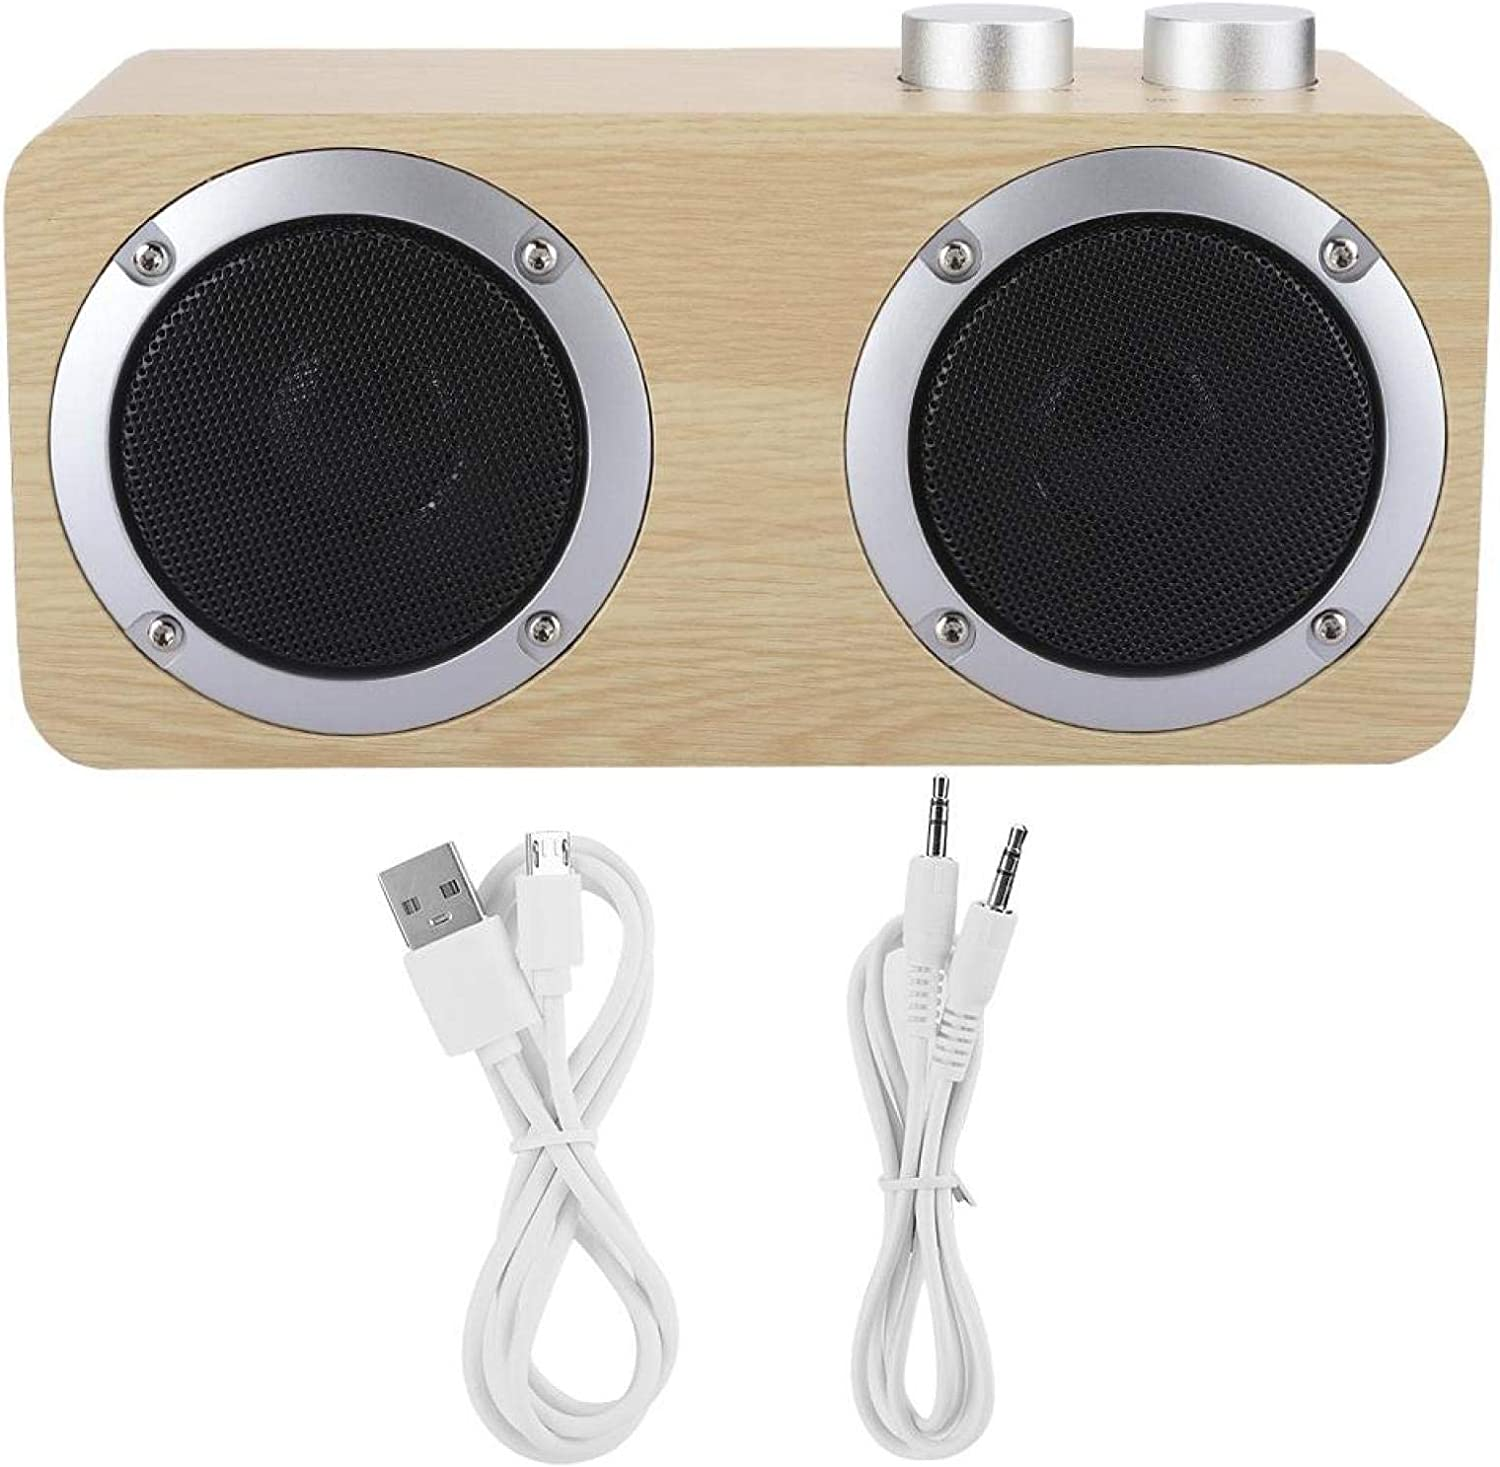 Qqmora Bluetooth Speaker Wooden Free shipping Bombing new work on posting reviews Rotary Knob with